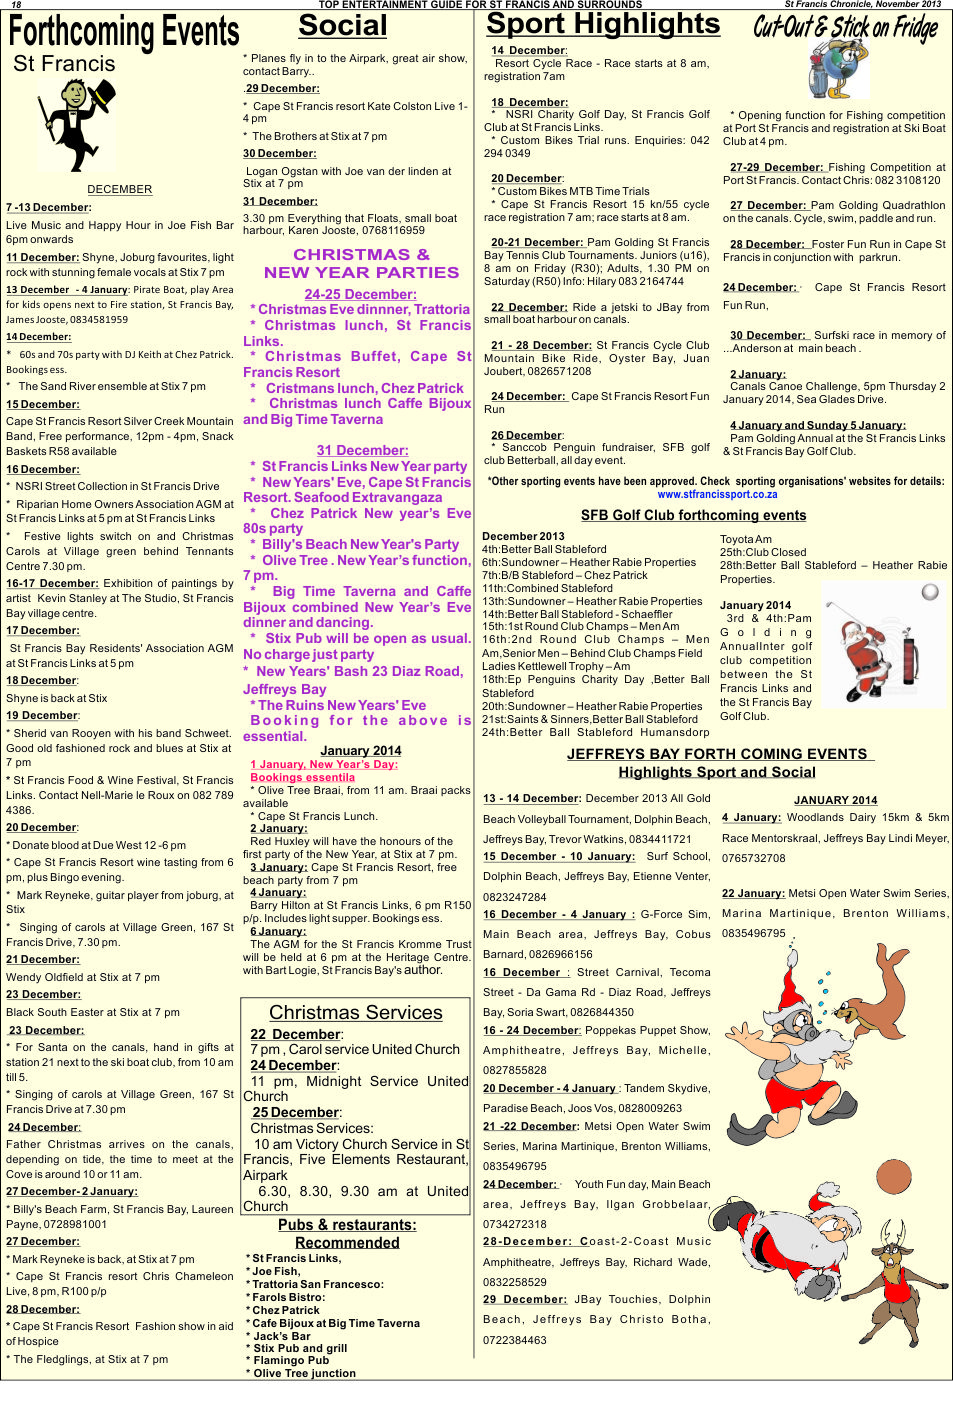 forthcoming events in St Francis 2013